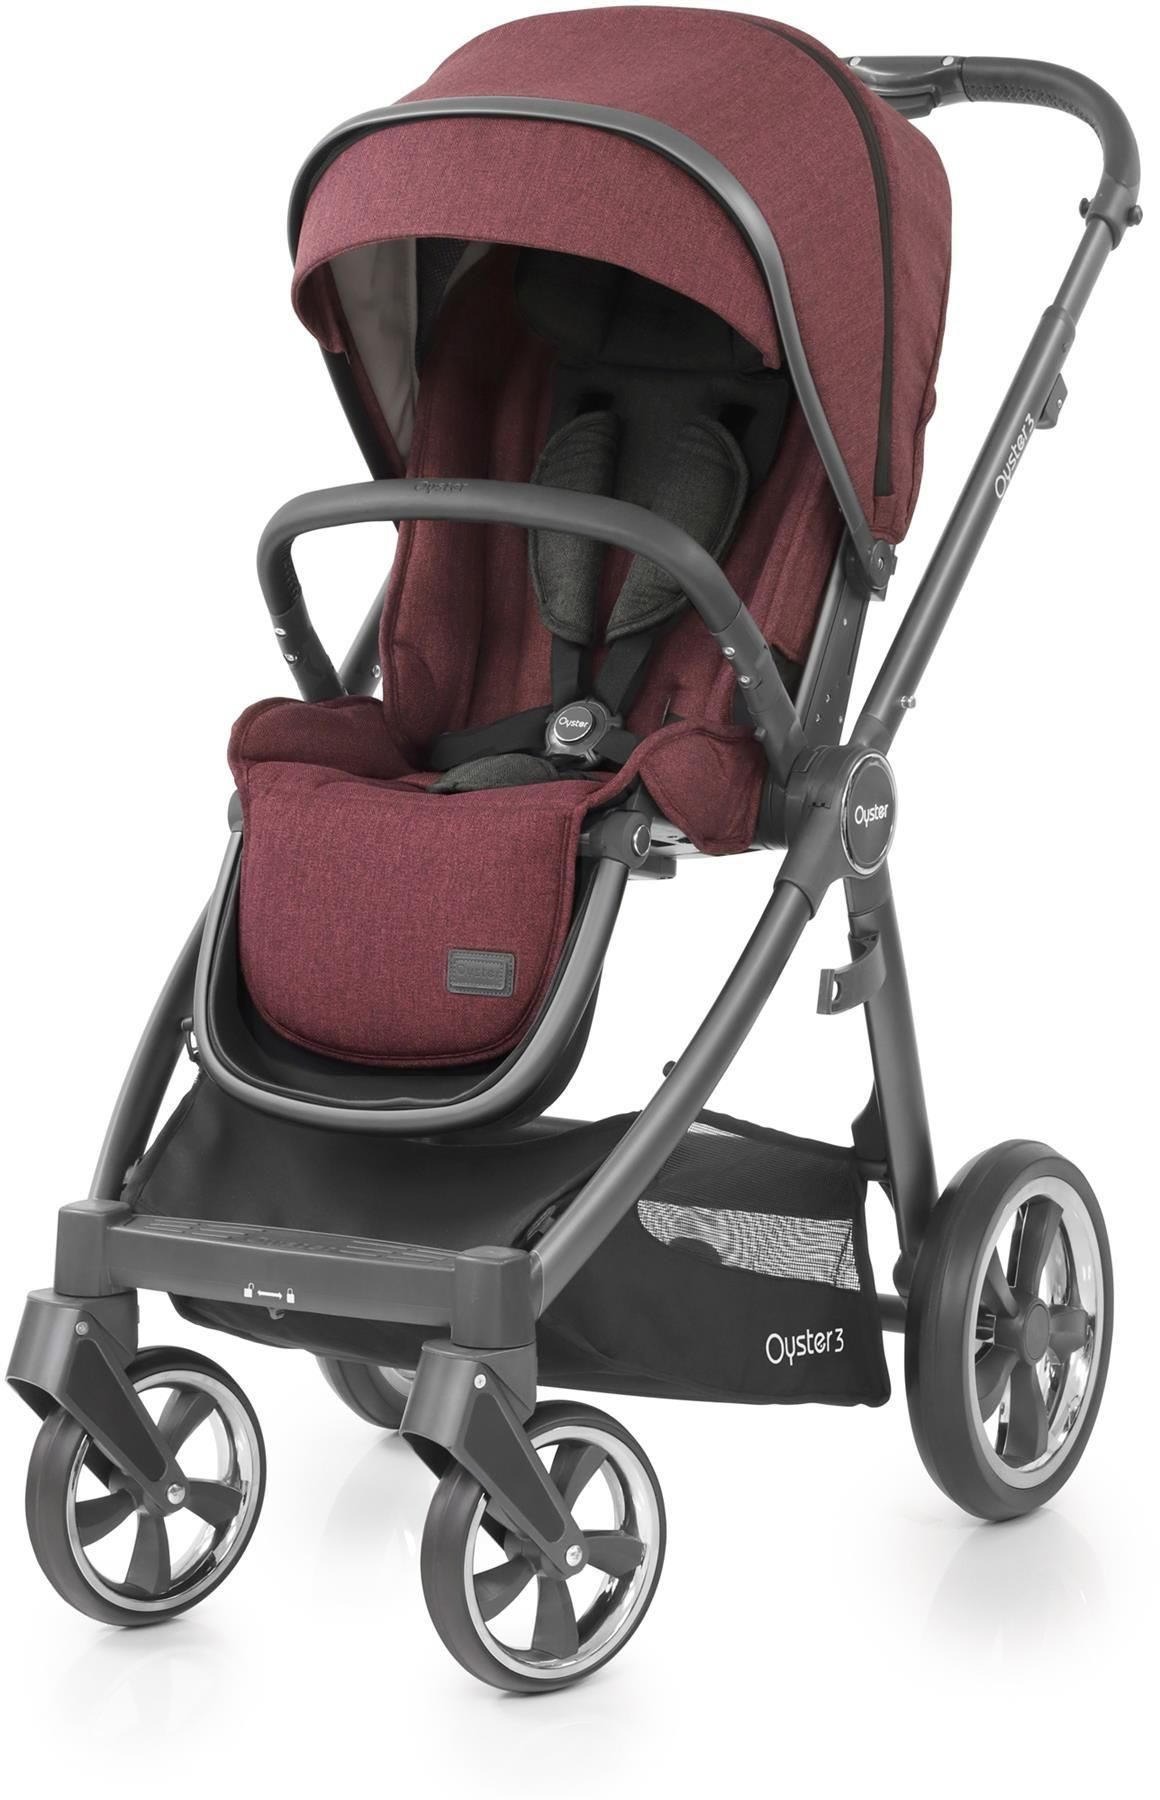 Oyster Pram Purple Babystyle Oyster 3 Stroller City Grey Chassis Berry